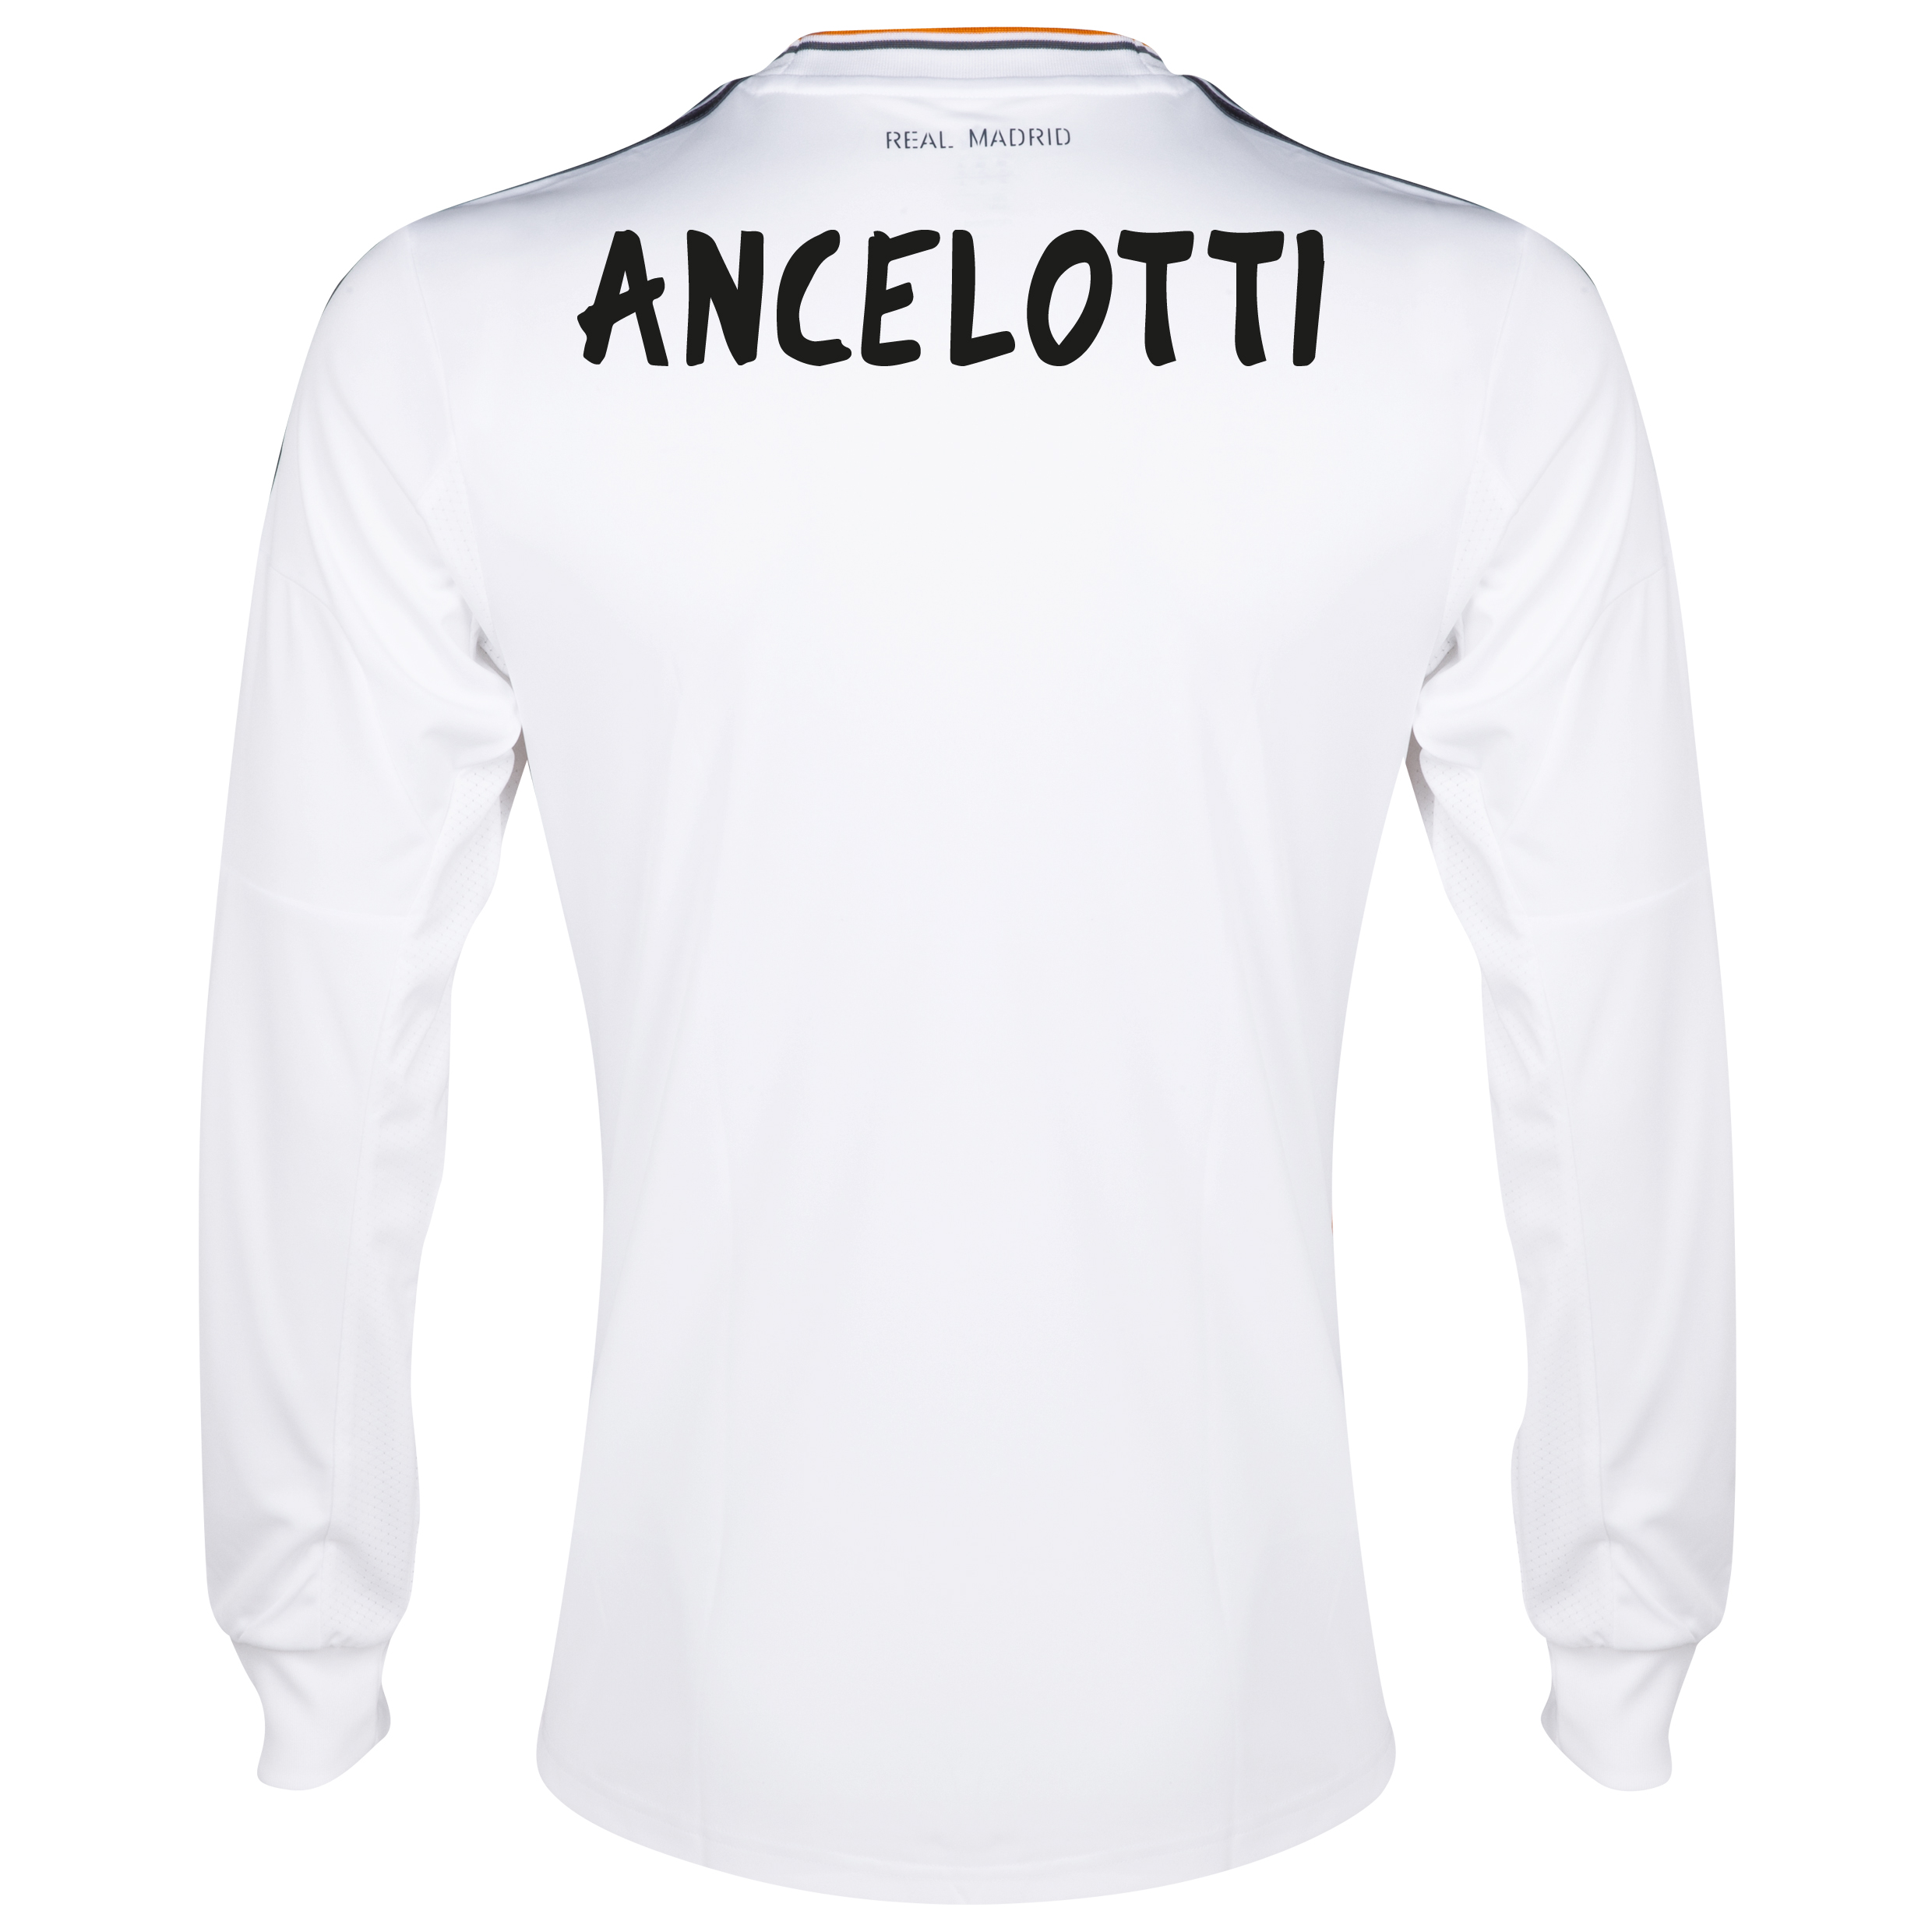 Real Madrid Home Shirt 2013/14 - Long Sleeve with Ancelotti  printing